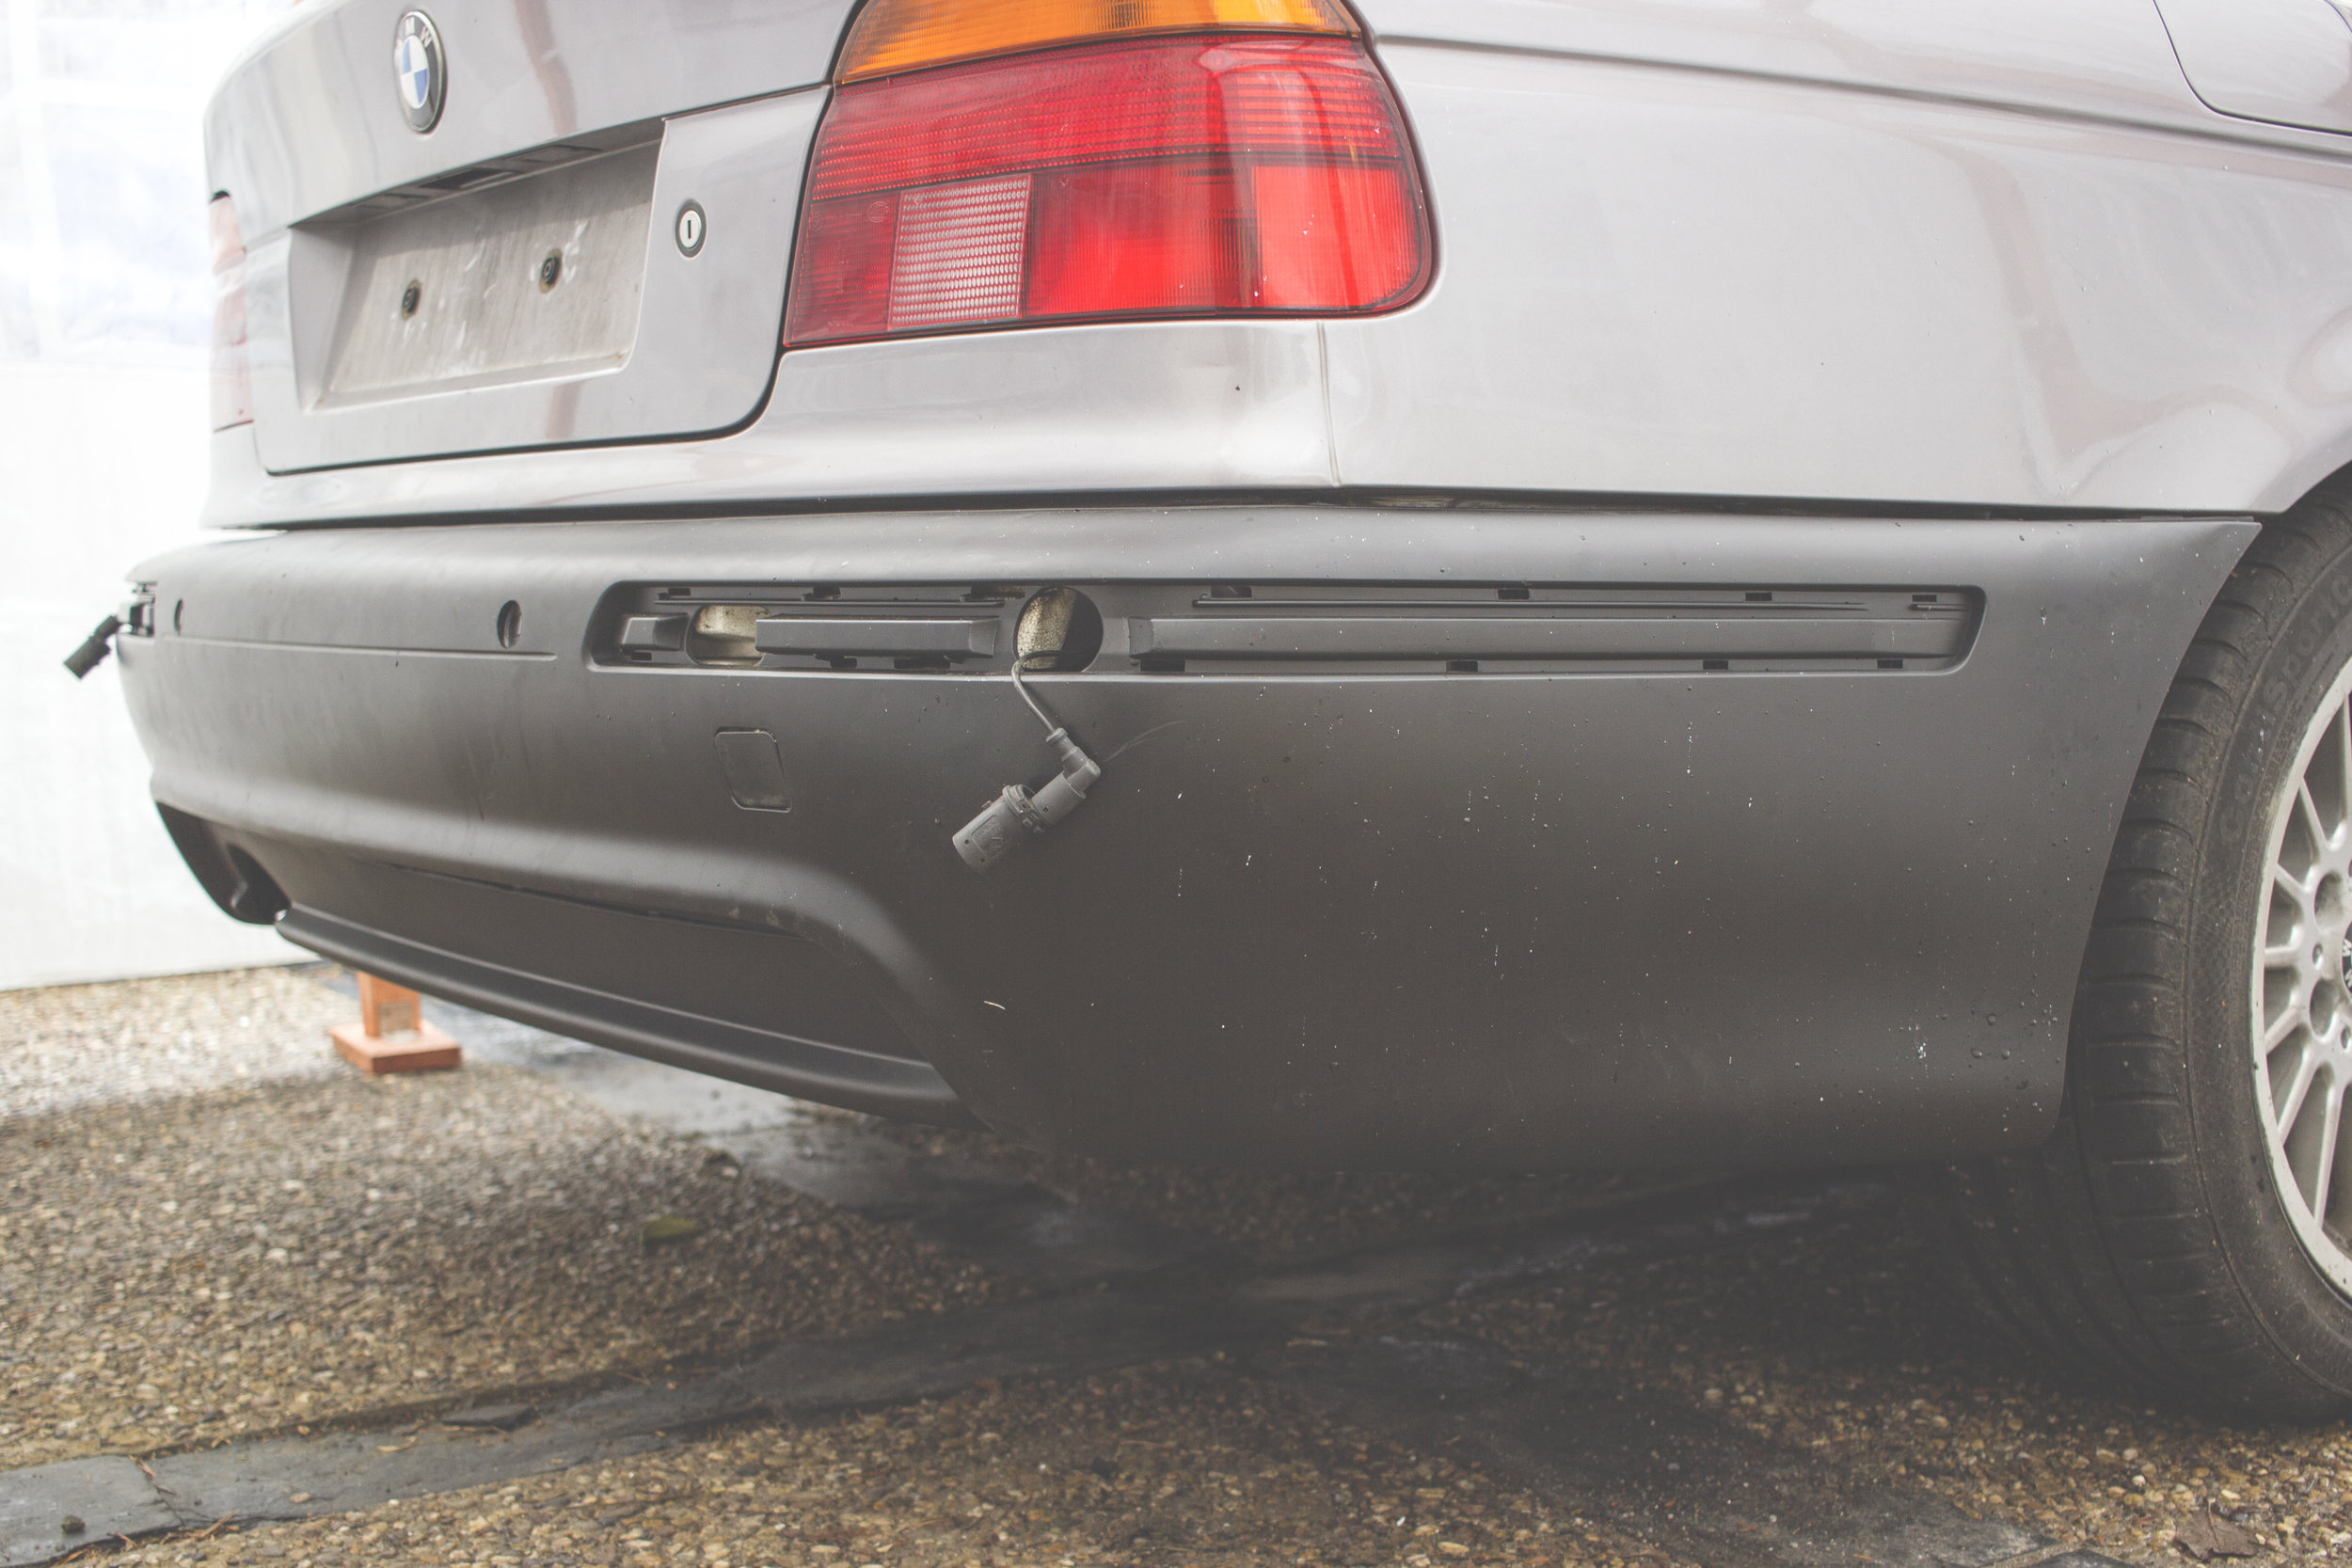 Mömus BMW E39 remove replace install facelift rear m sport pack bumper fl